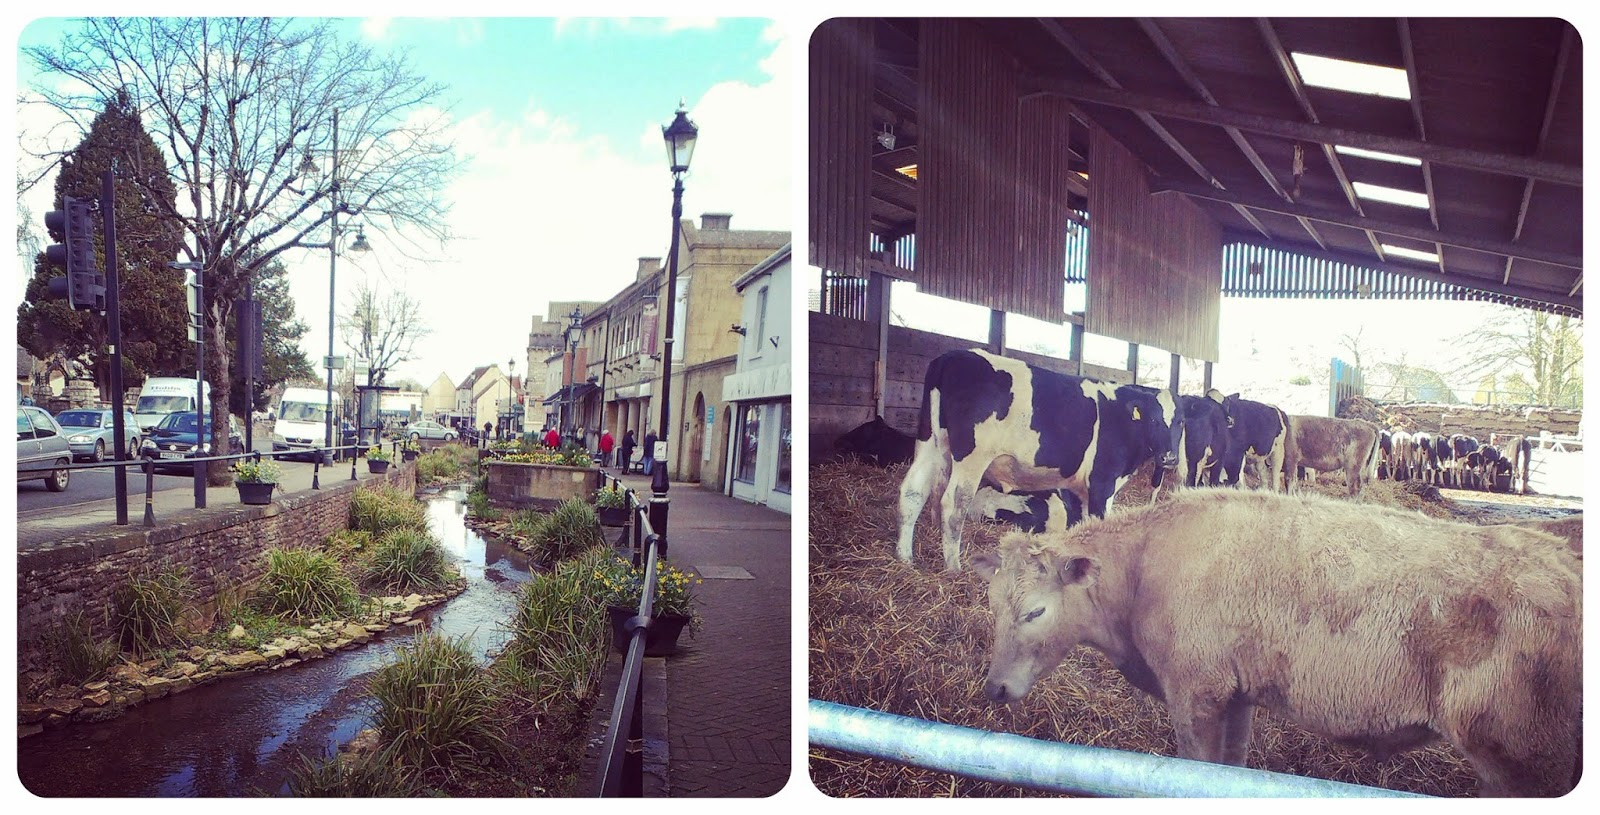 Midsomer Norton High Street and Farringtons Farm Shop Cows